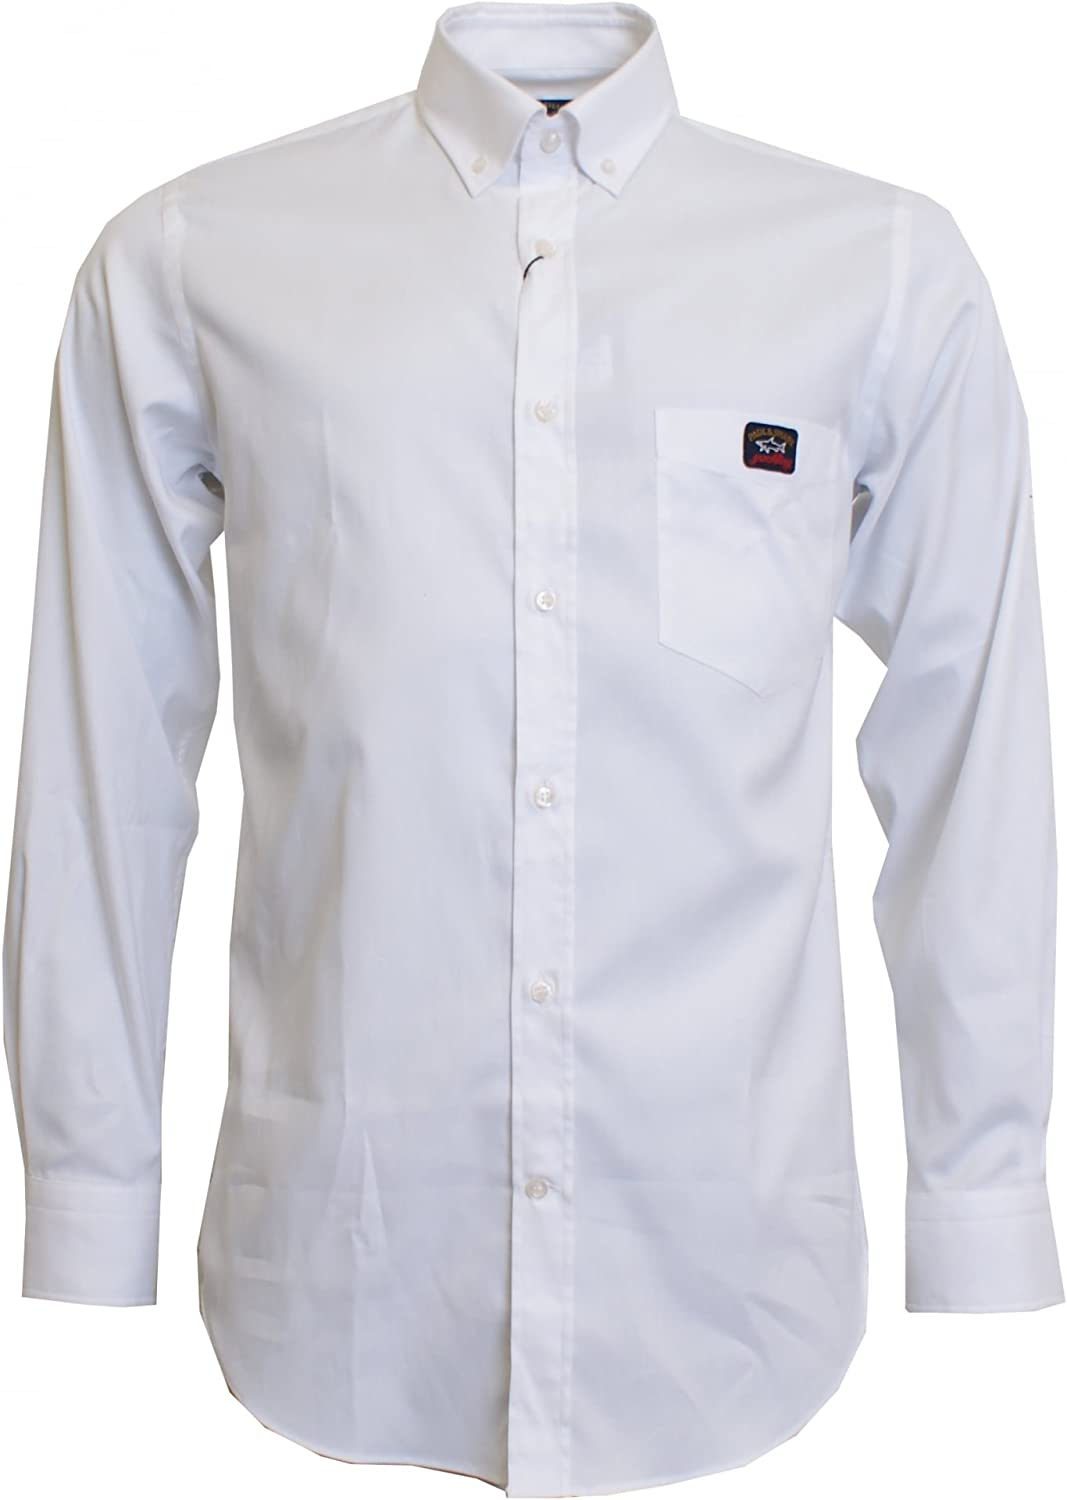 PAUL & SHARK Regular fit Larga Camisa Oxford Manga Blanco 43 - X Large: Amazon.es: Ropa y accesorios